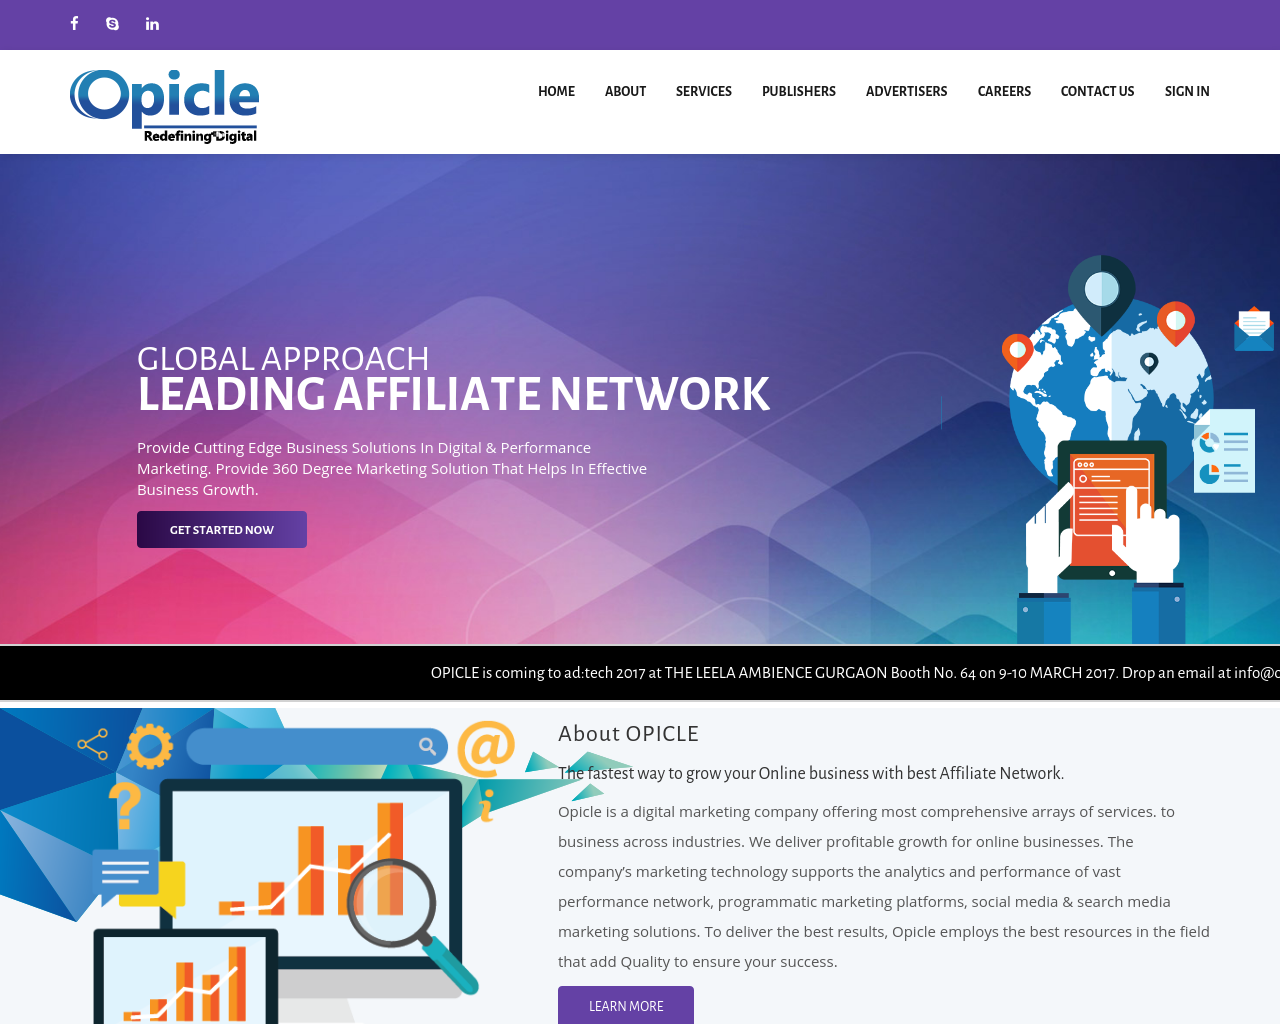 Opicle-Network-Advertising-Reviews-Pricing